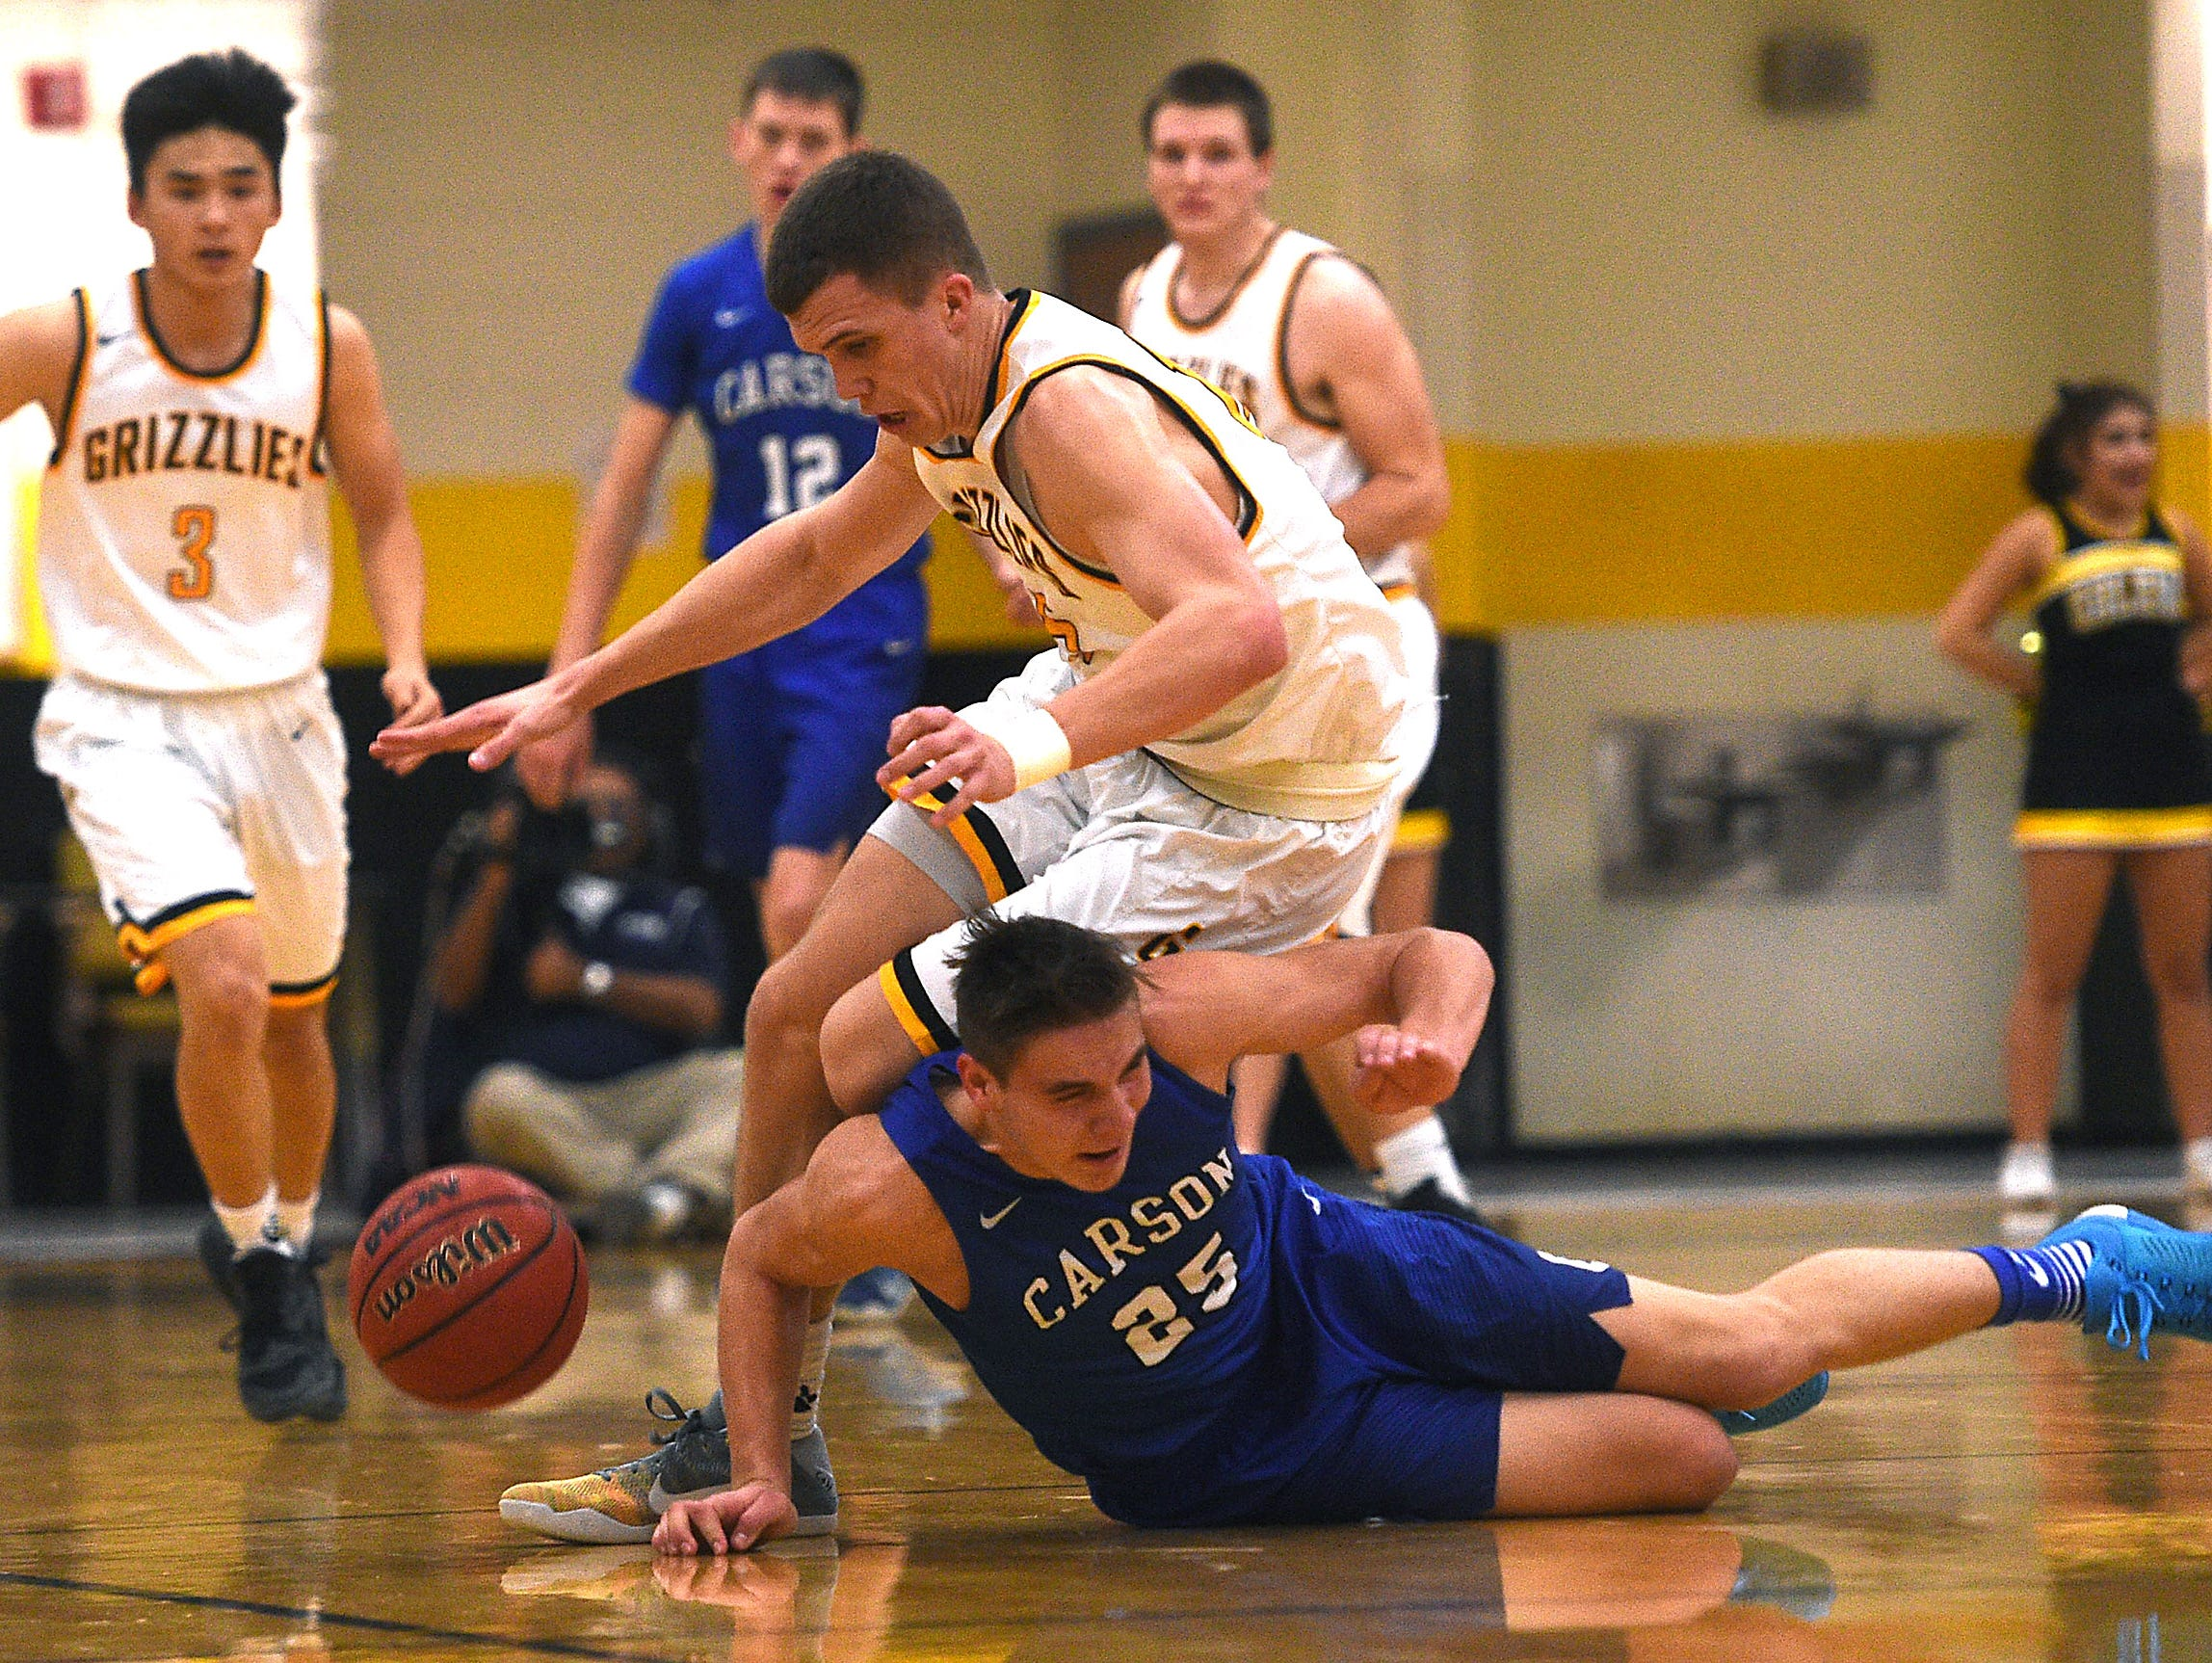 Galena's Dillon Voyles (15) battles Carson's Jayden Dejoseph (25) for a loose ball during their basketball game at Galena on Friday